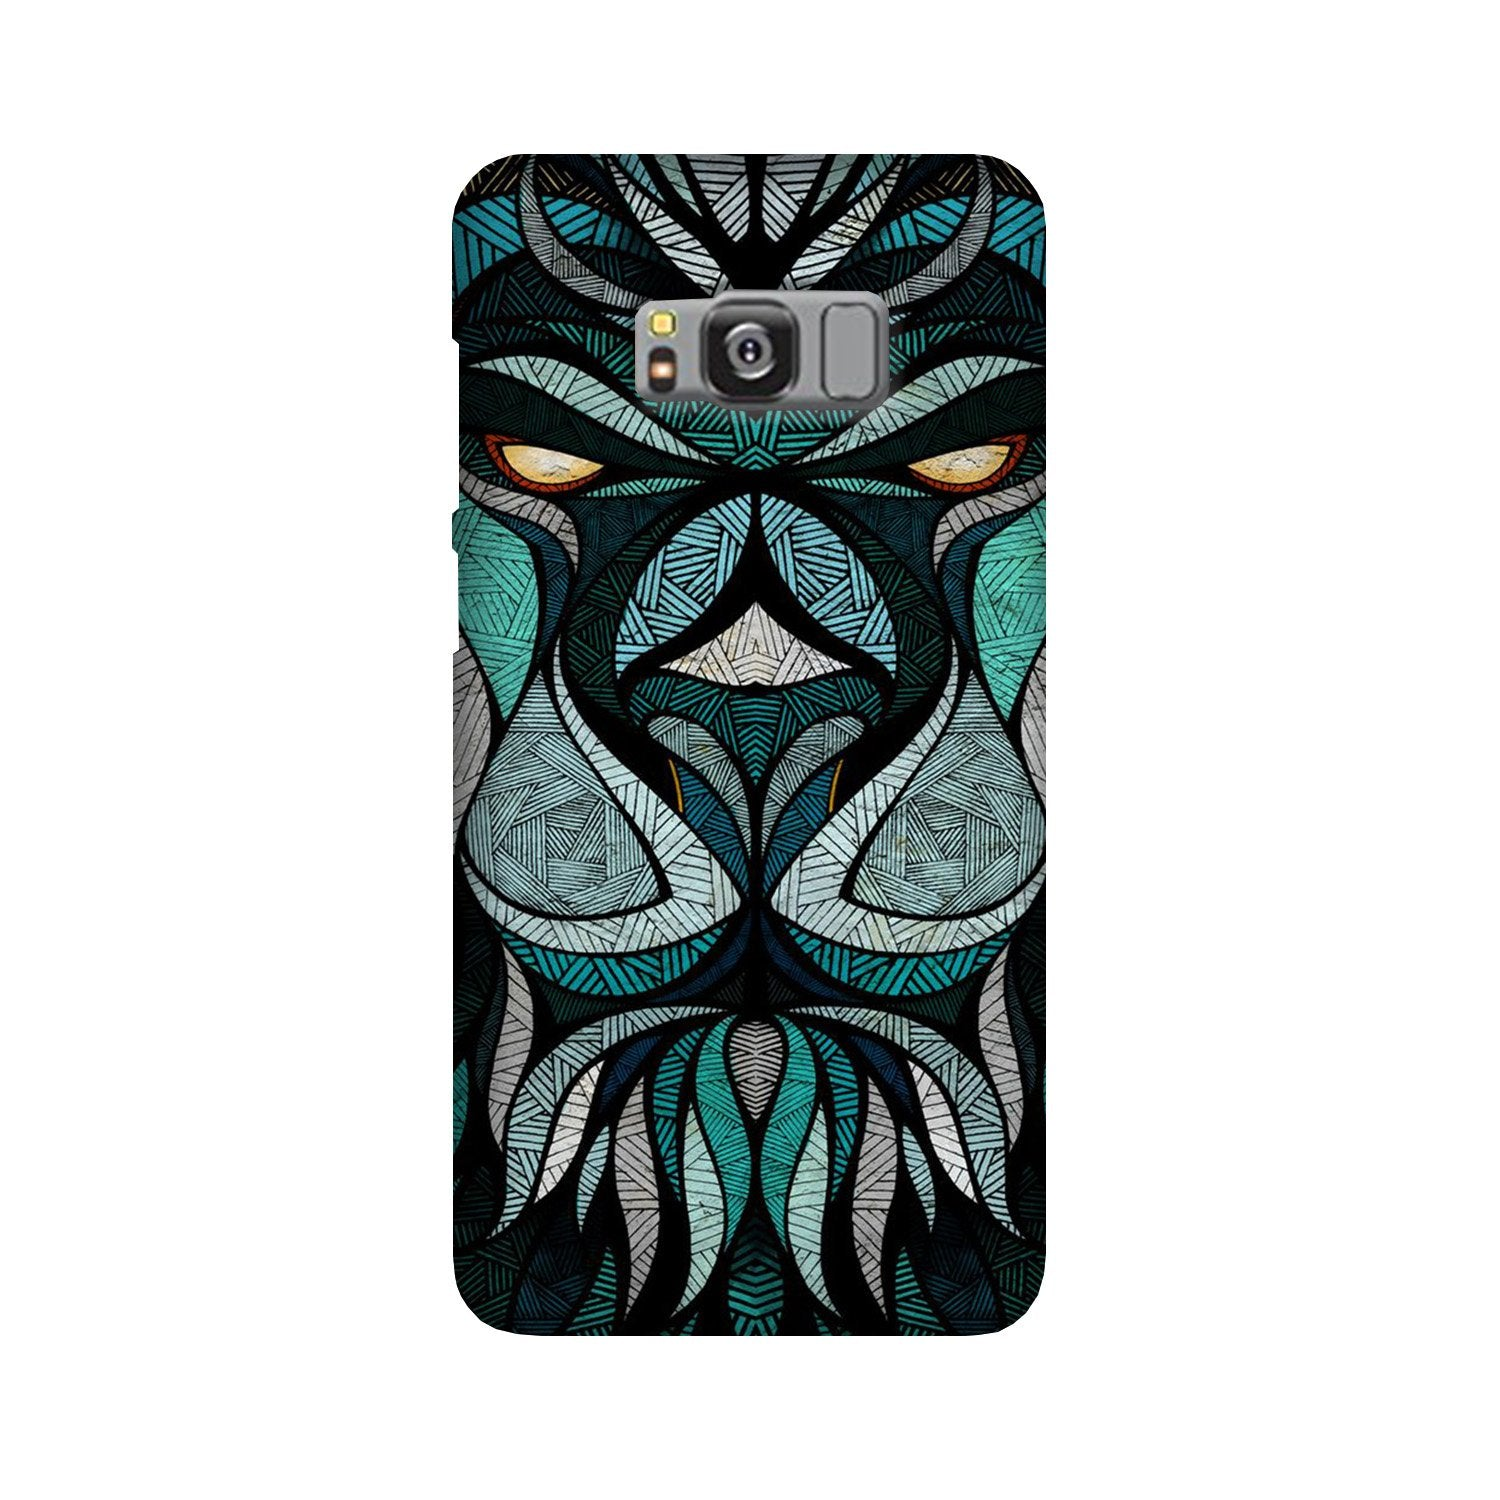 Lion Case for Galaxy S8 Plus